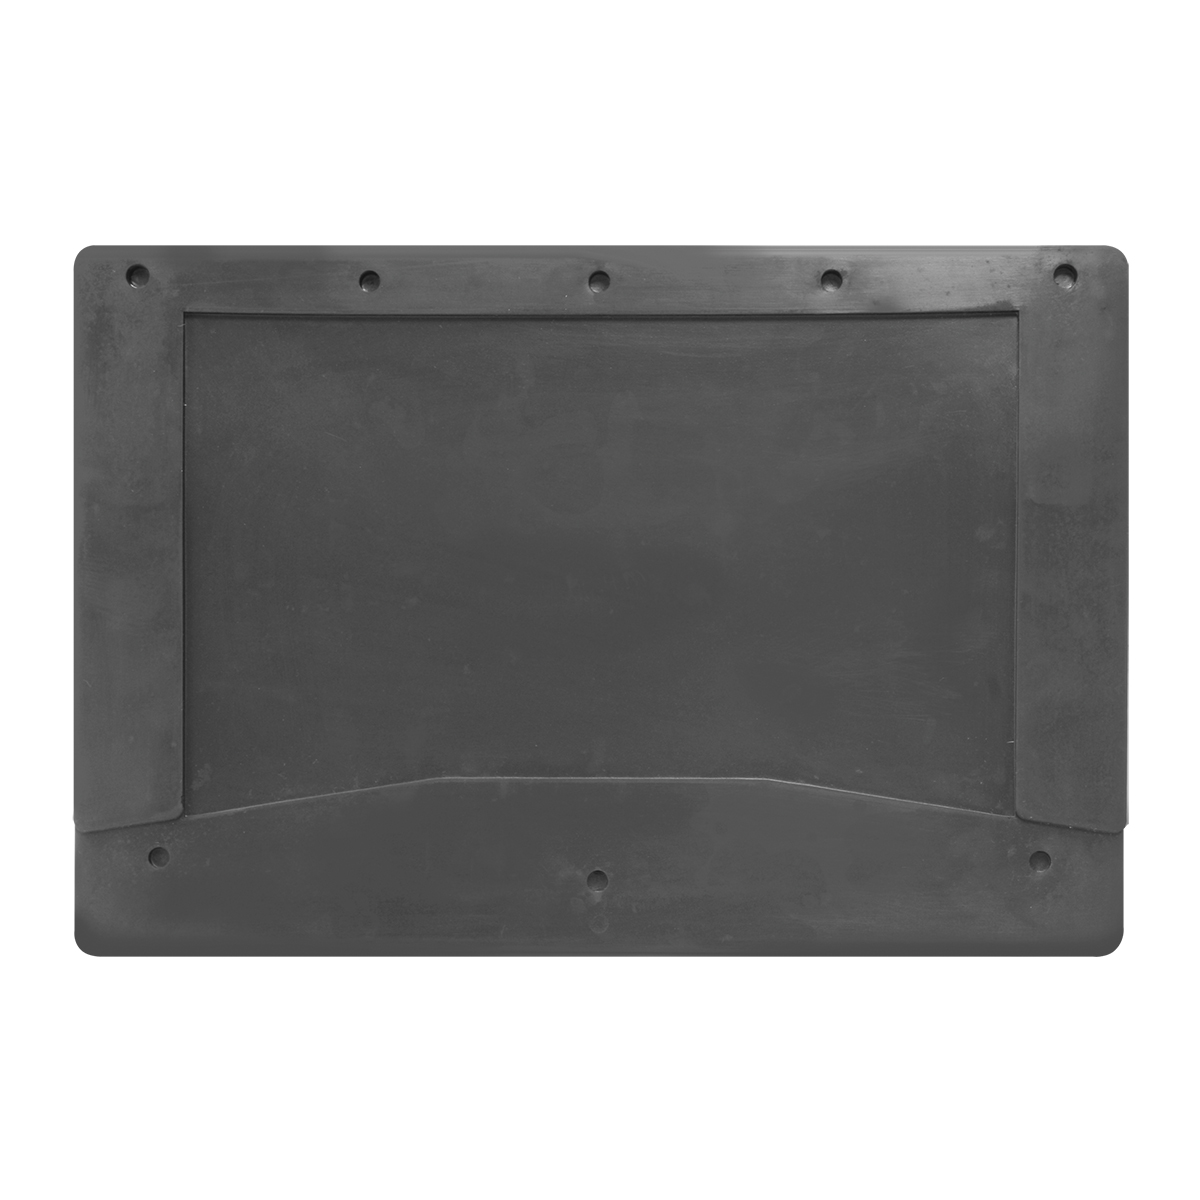 "Plain Black Mud Flap 12"" (W) x 18"" (H) - Pair"